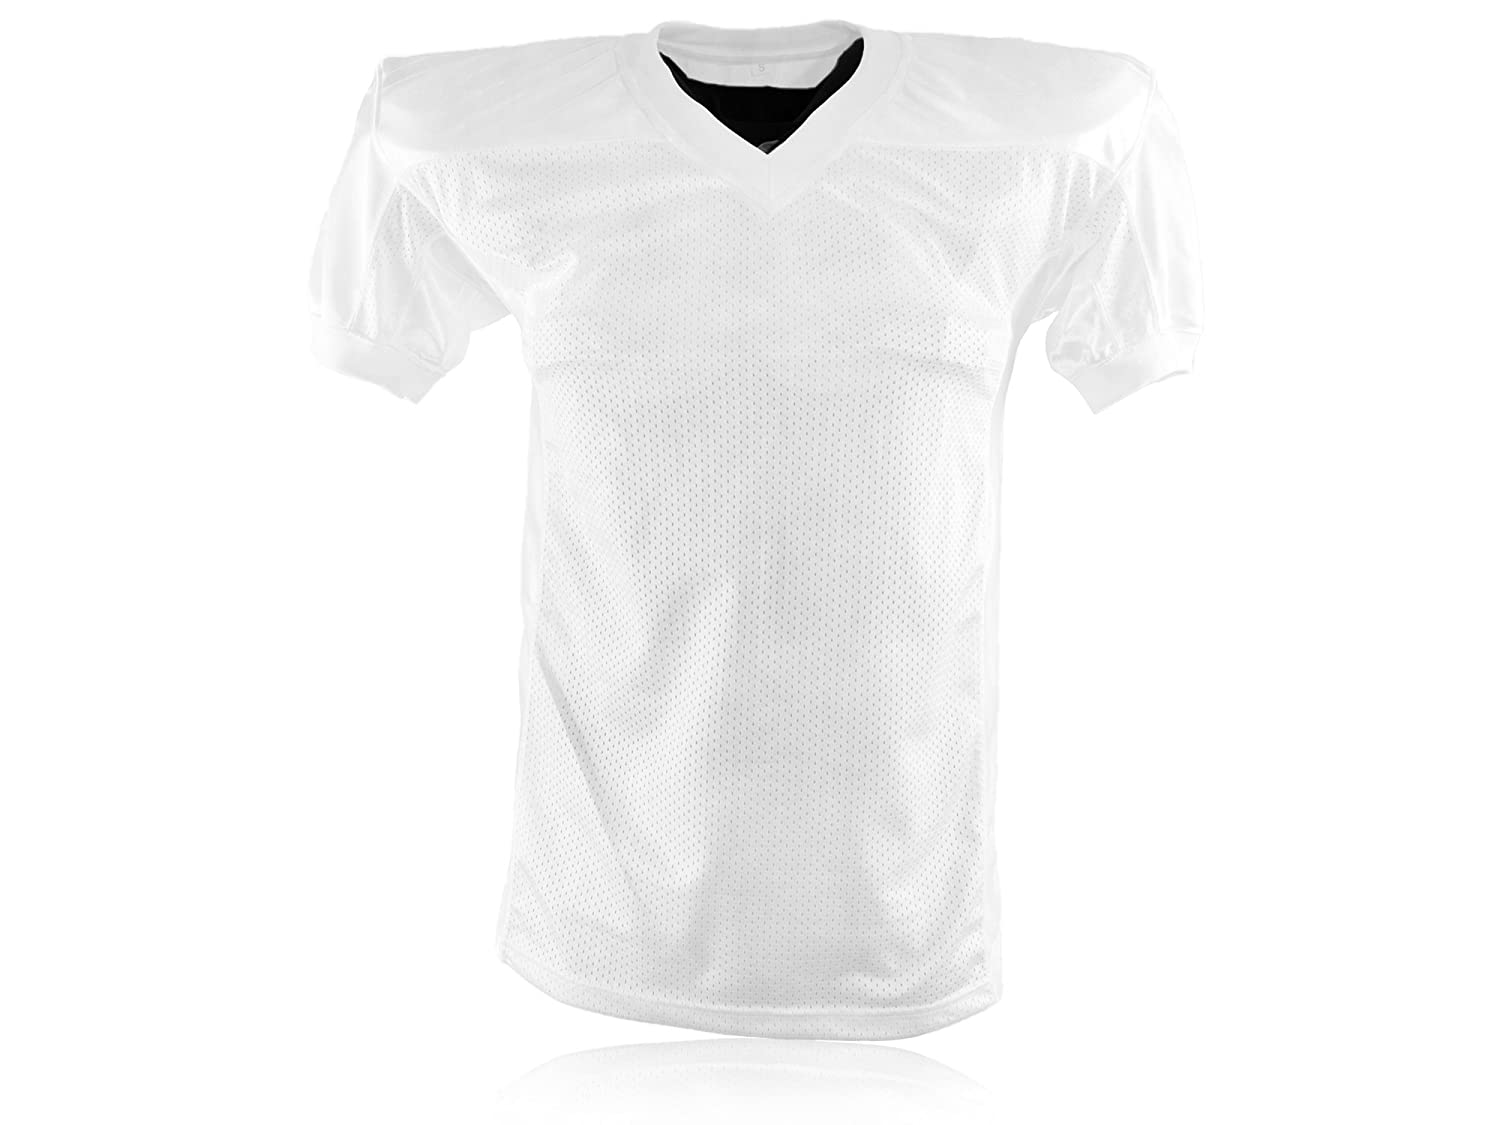 Full Force American Football Gamejersey, Weiss, Gr. YL-5XL Full Force Wear